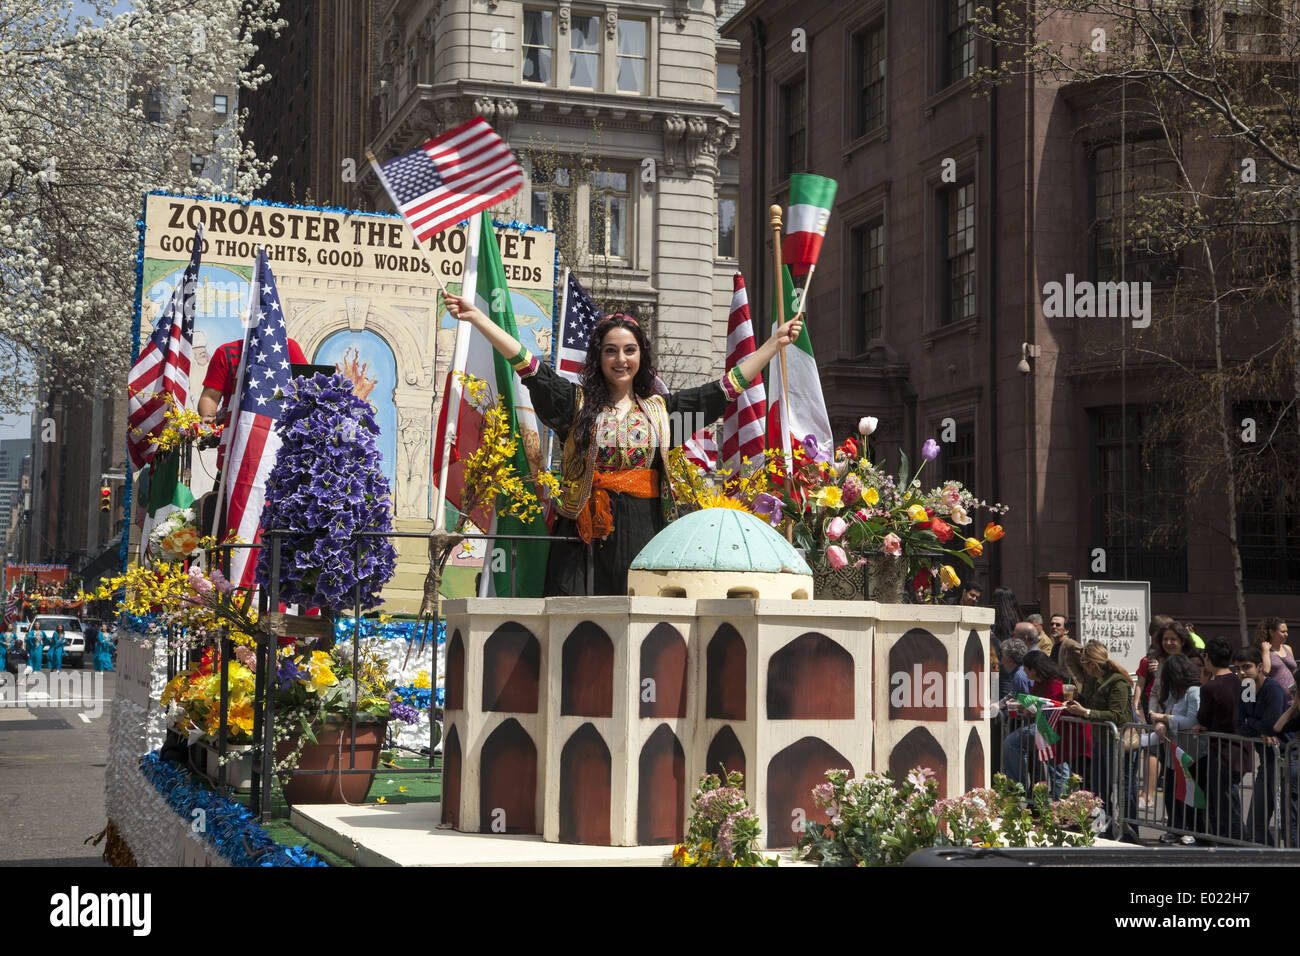 Float paying tribute to the ancient Zoroastrian religion of Persia. Persian Day Parade, New York City - Stock Image